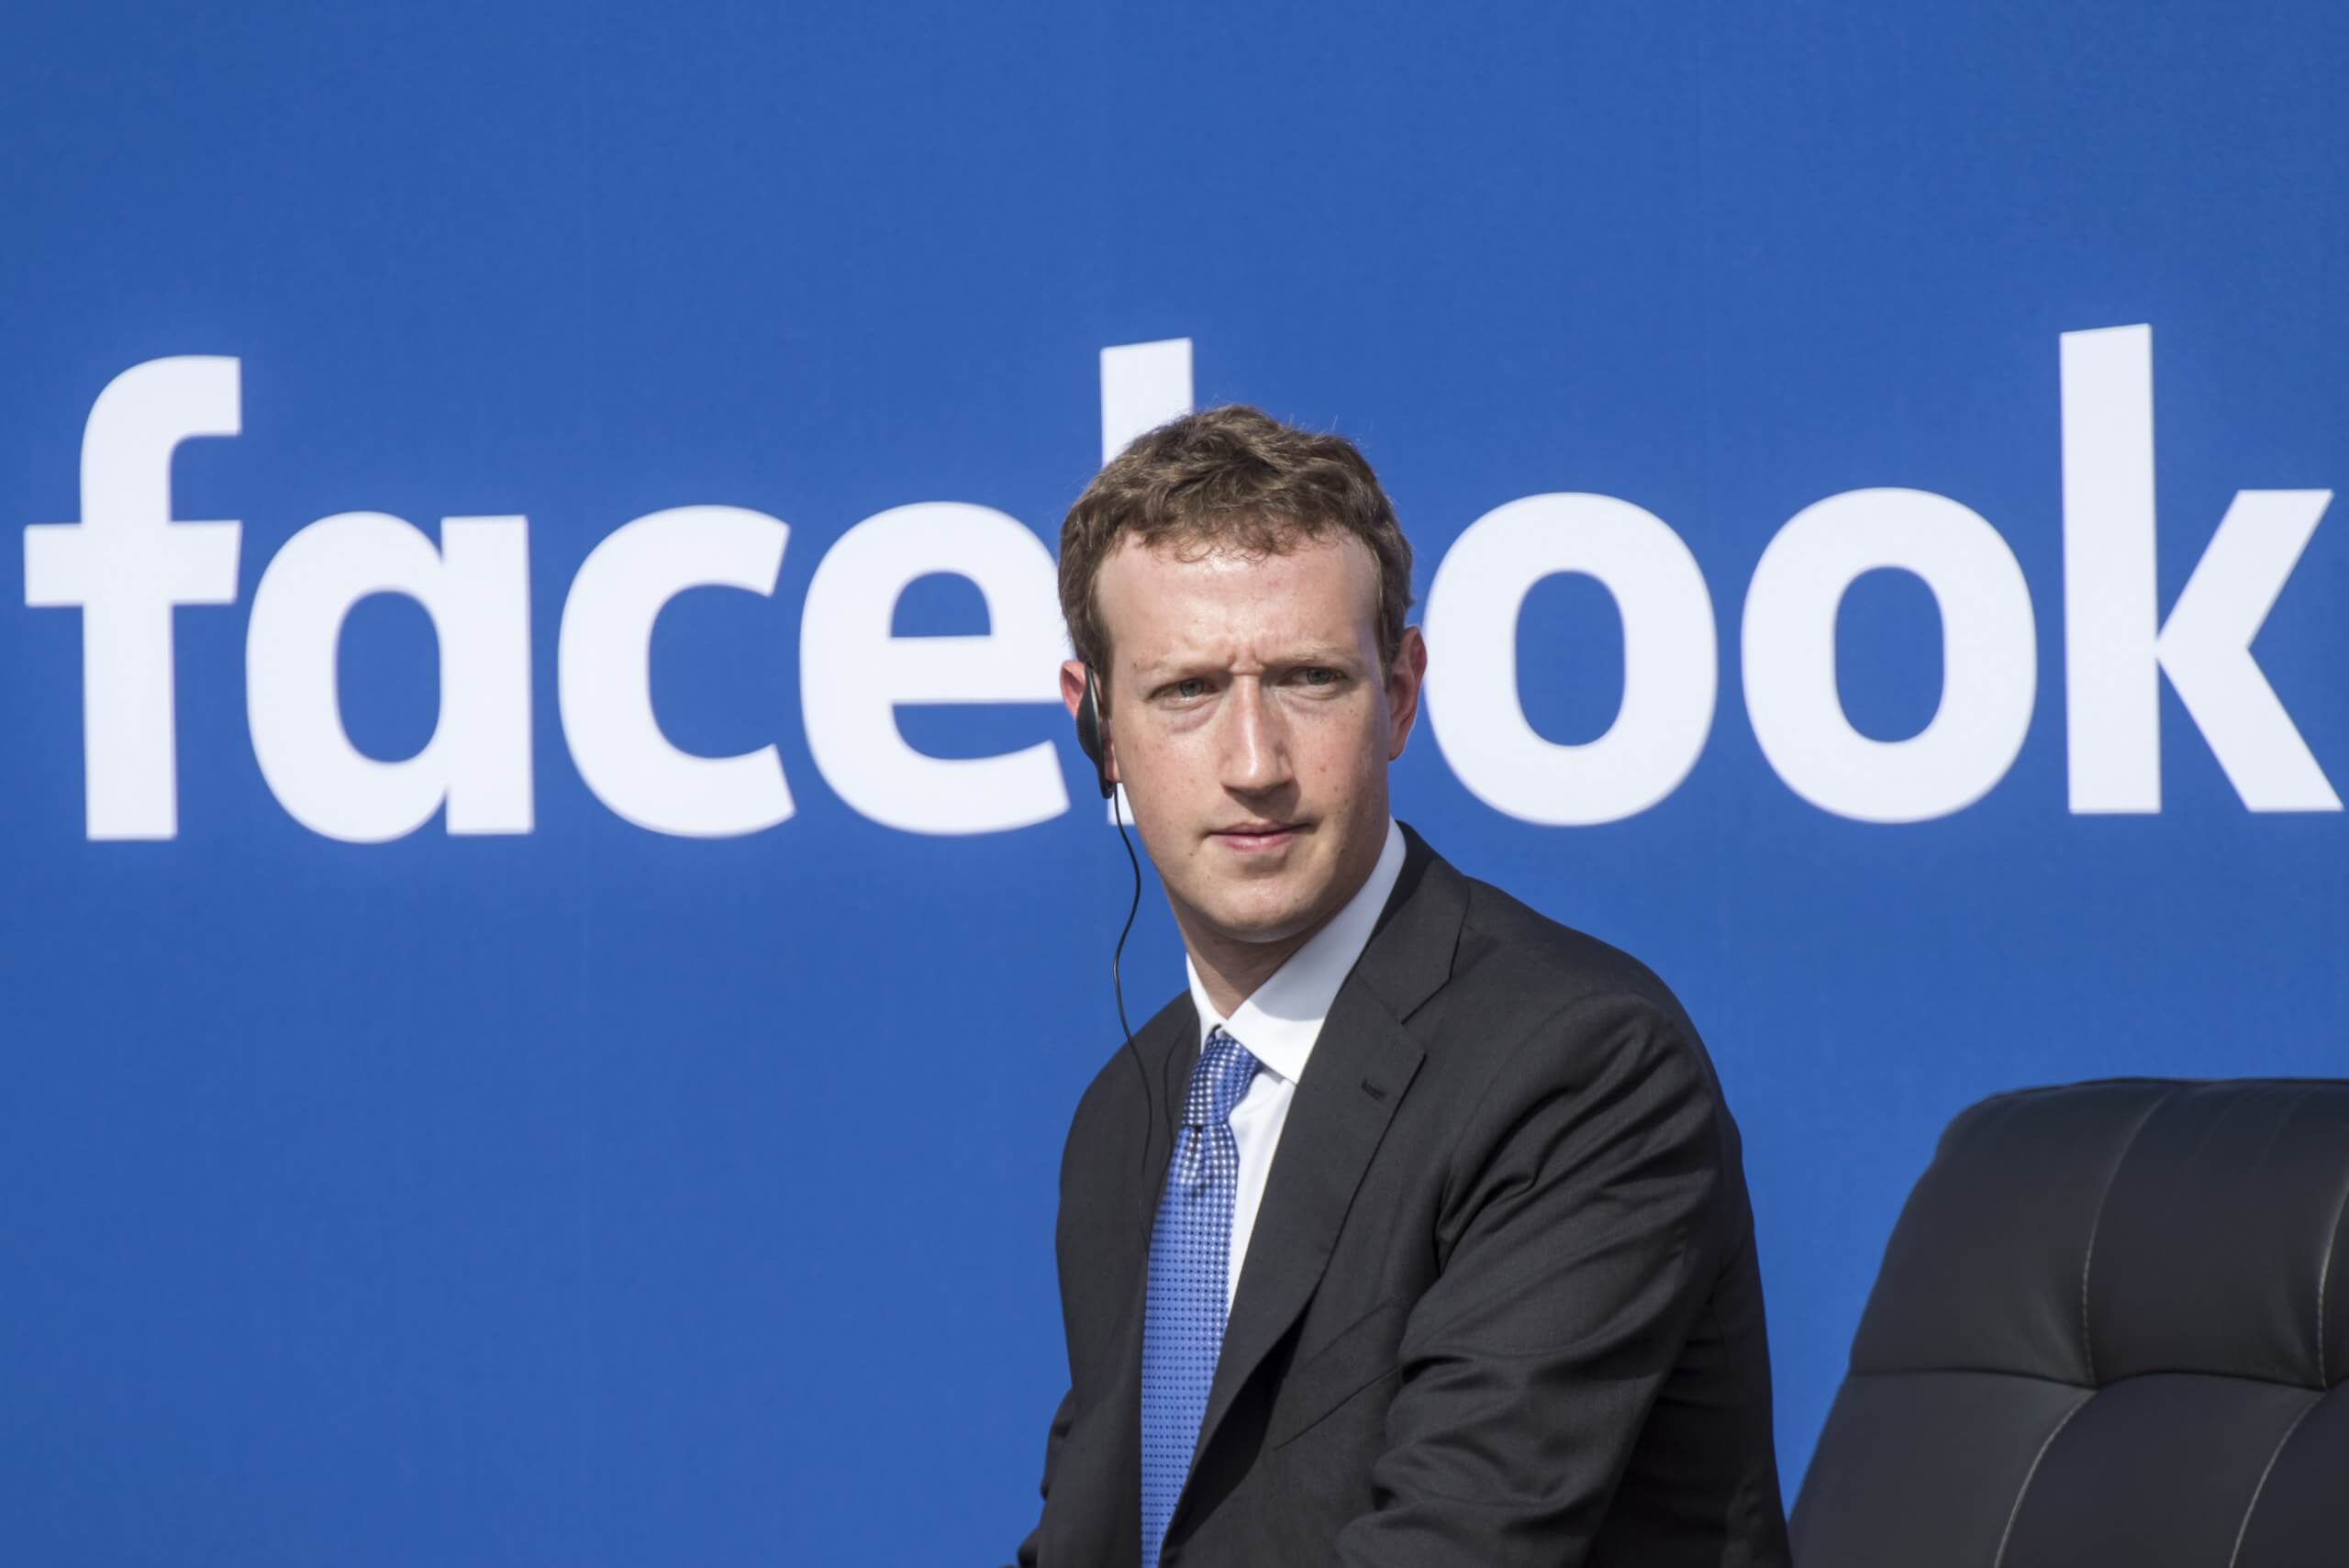 Documents show Facebook gave preferential access to data to certain companies